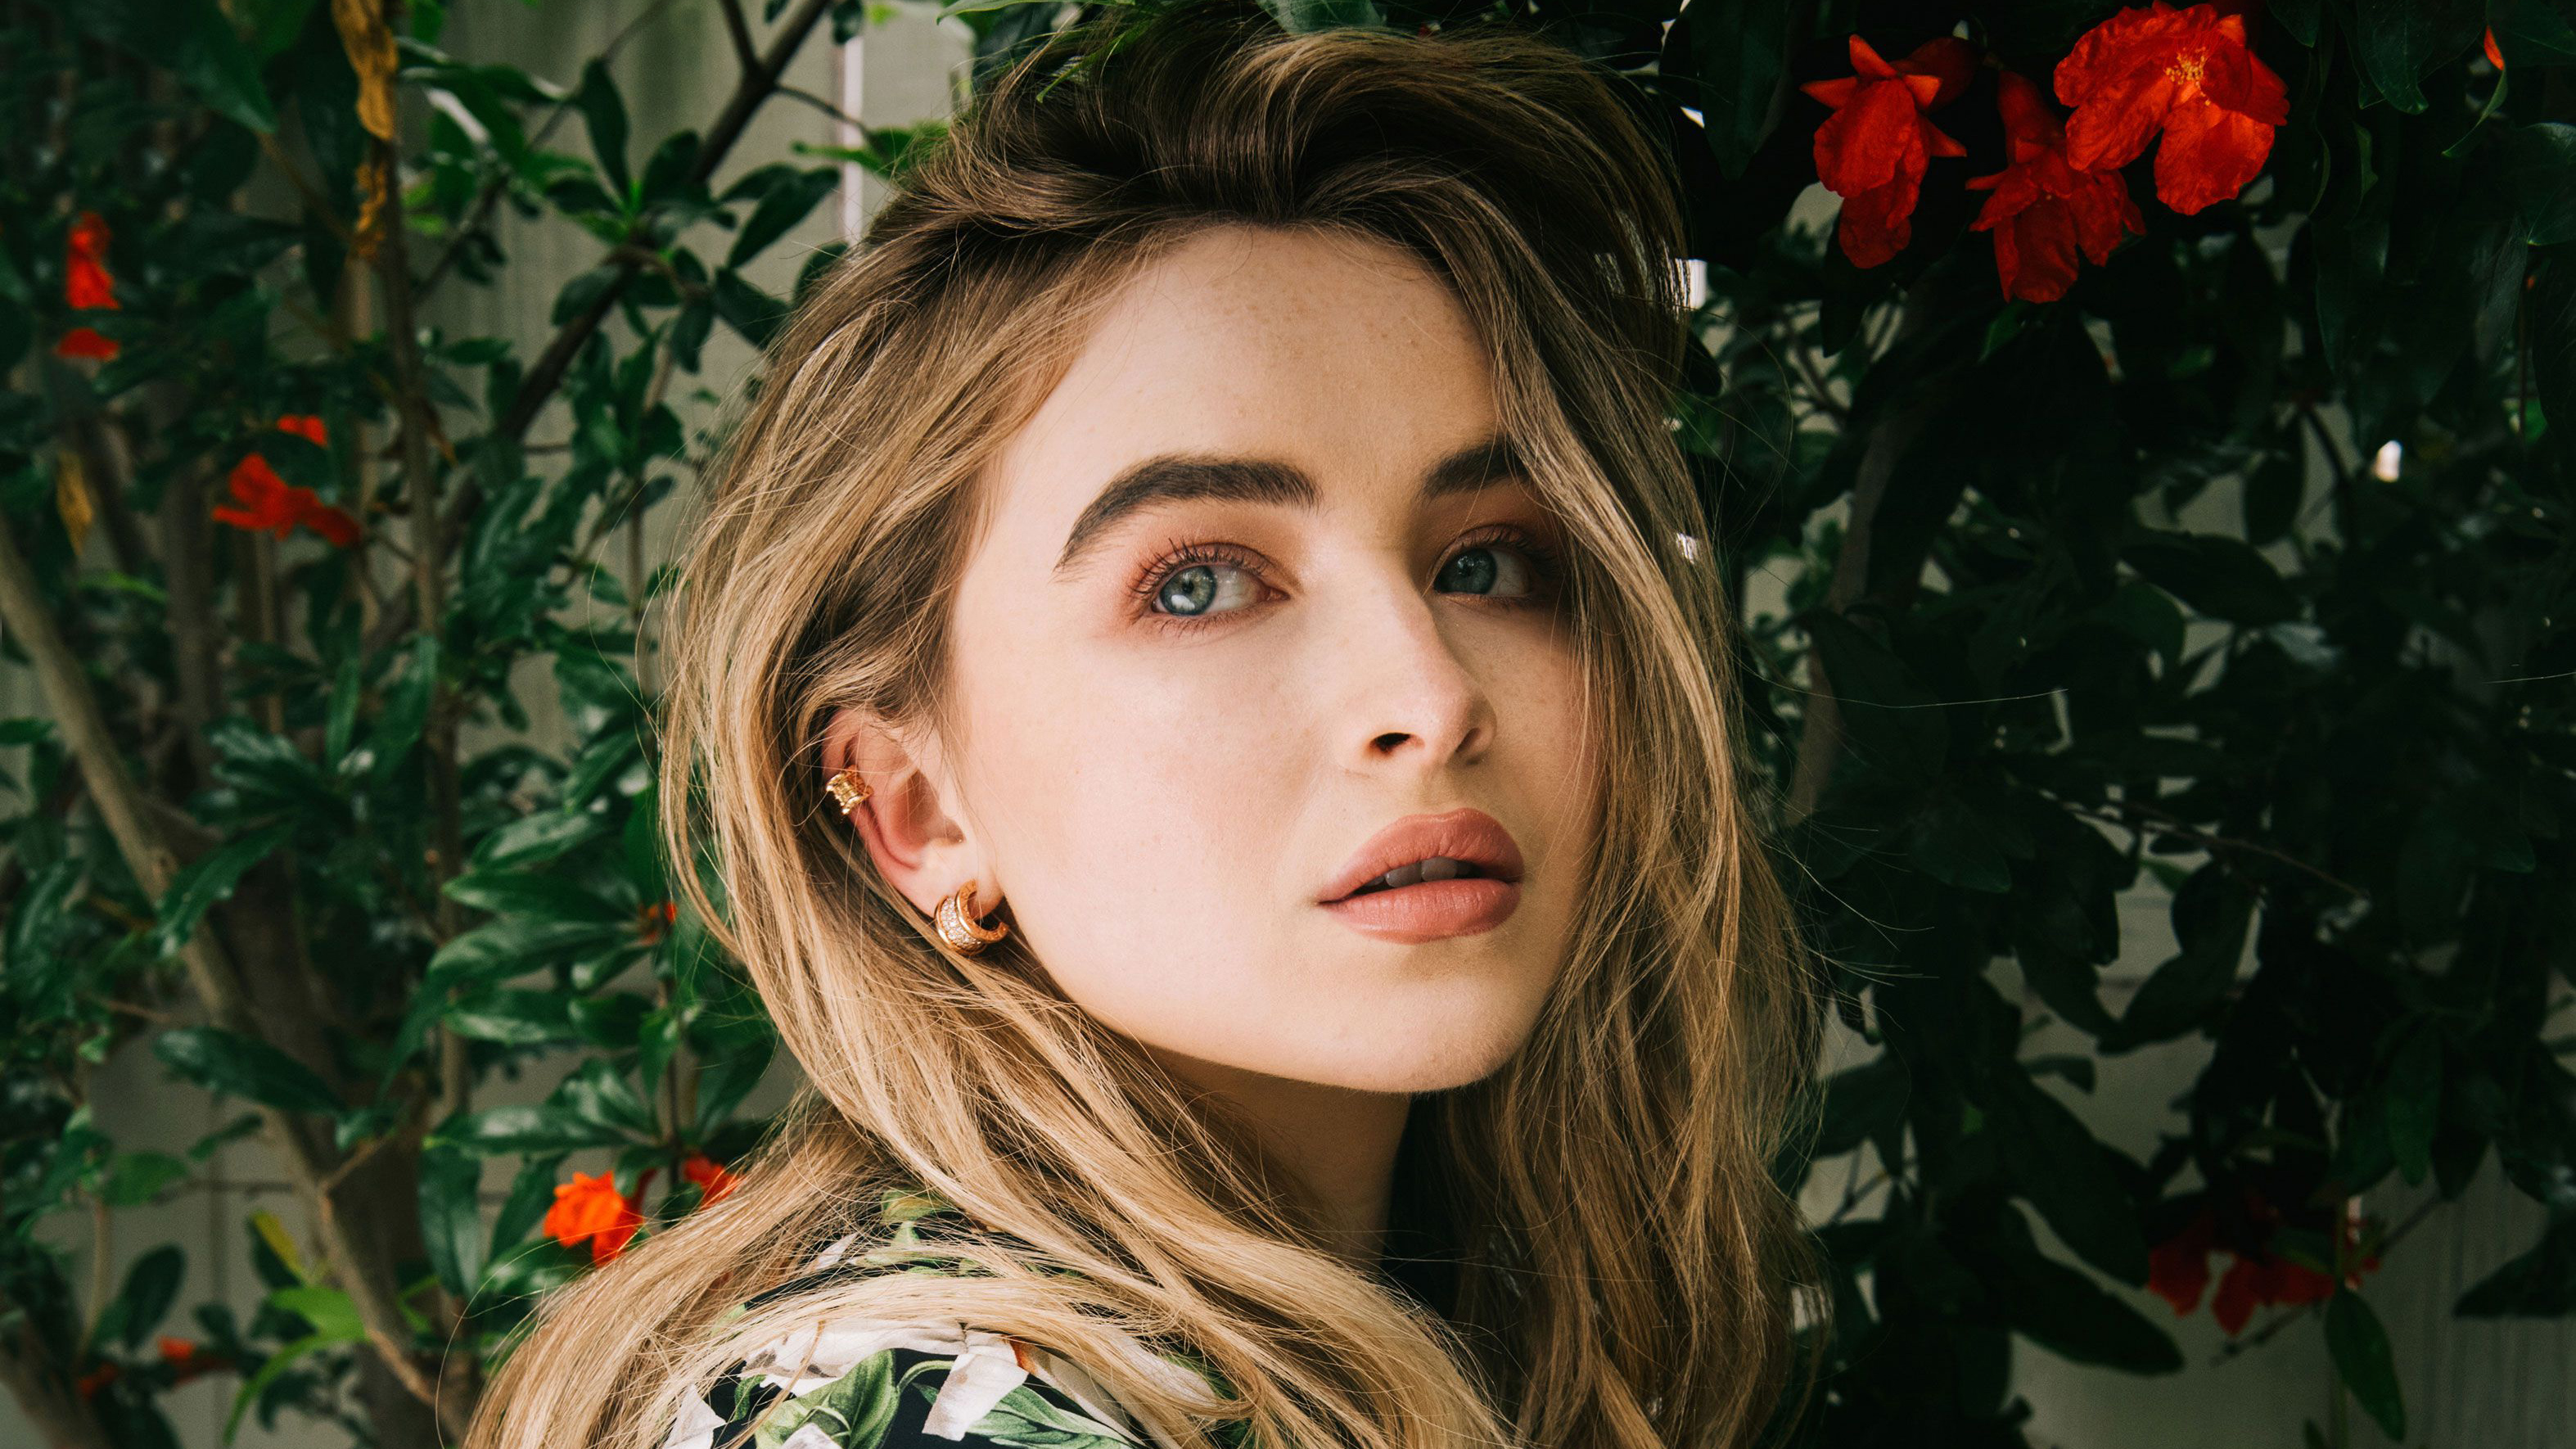 Sabrina carpenter marie claire 2019 4k hd celebrities 4k - Sabrina carpenter hd wallpaper ...